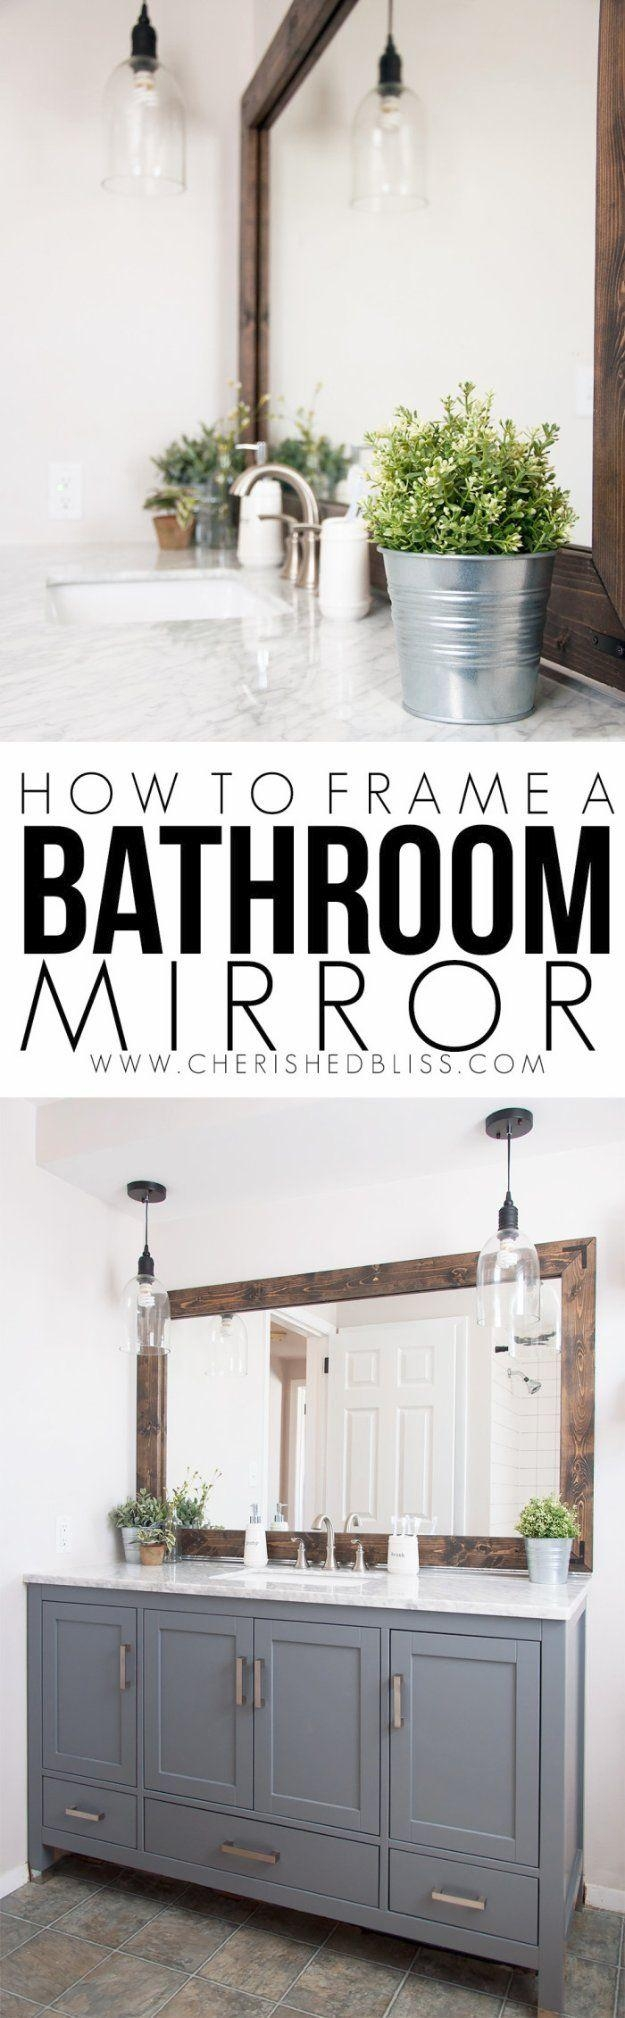 Best 25+ Bathroom Wall Art Ideas On Pinterest | Wall Decor For Within Bath Wall Art (View 13 of 20)